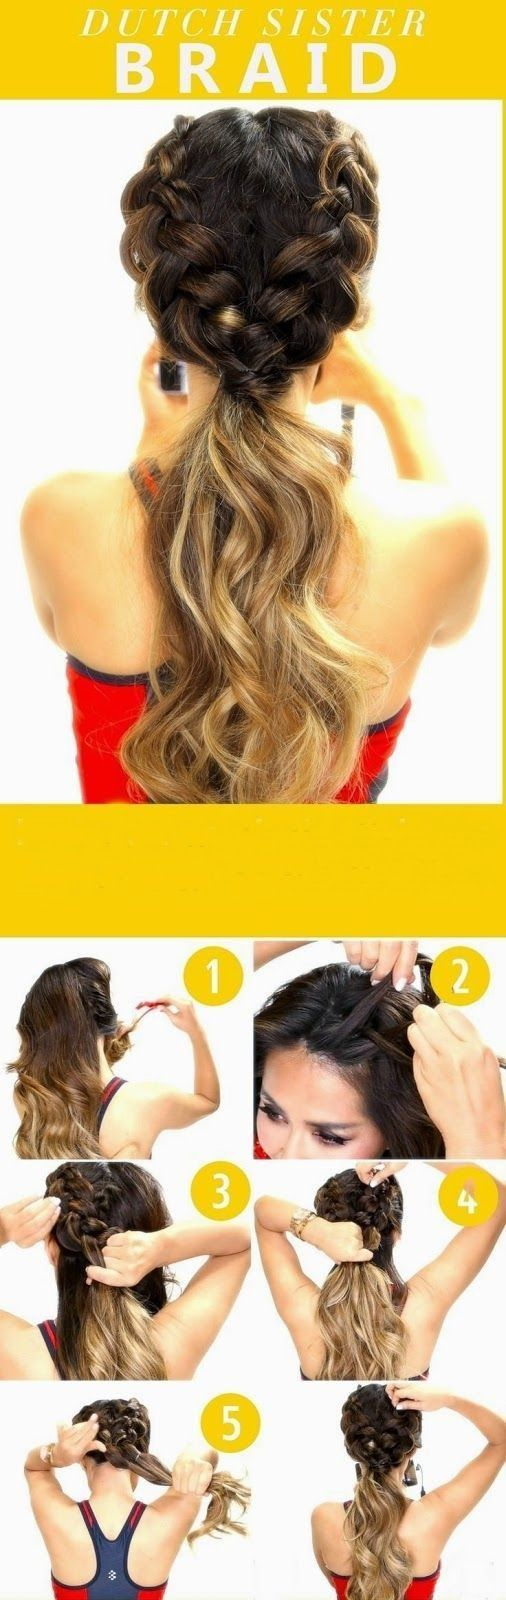 best images about idee per acconciature on pinterest side braid